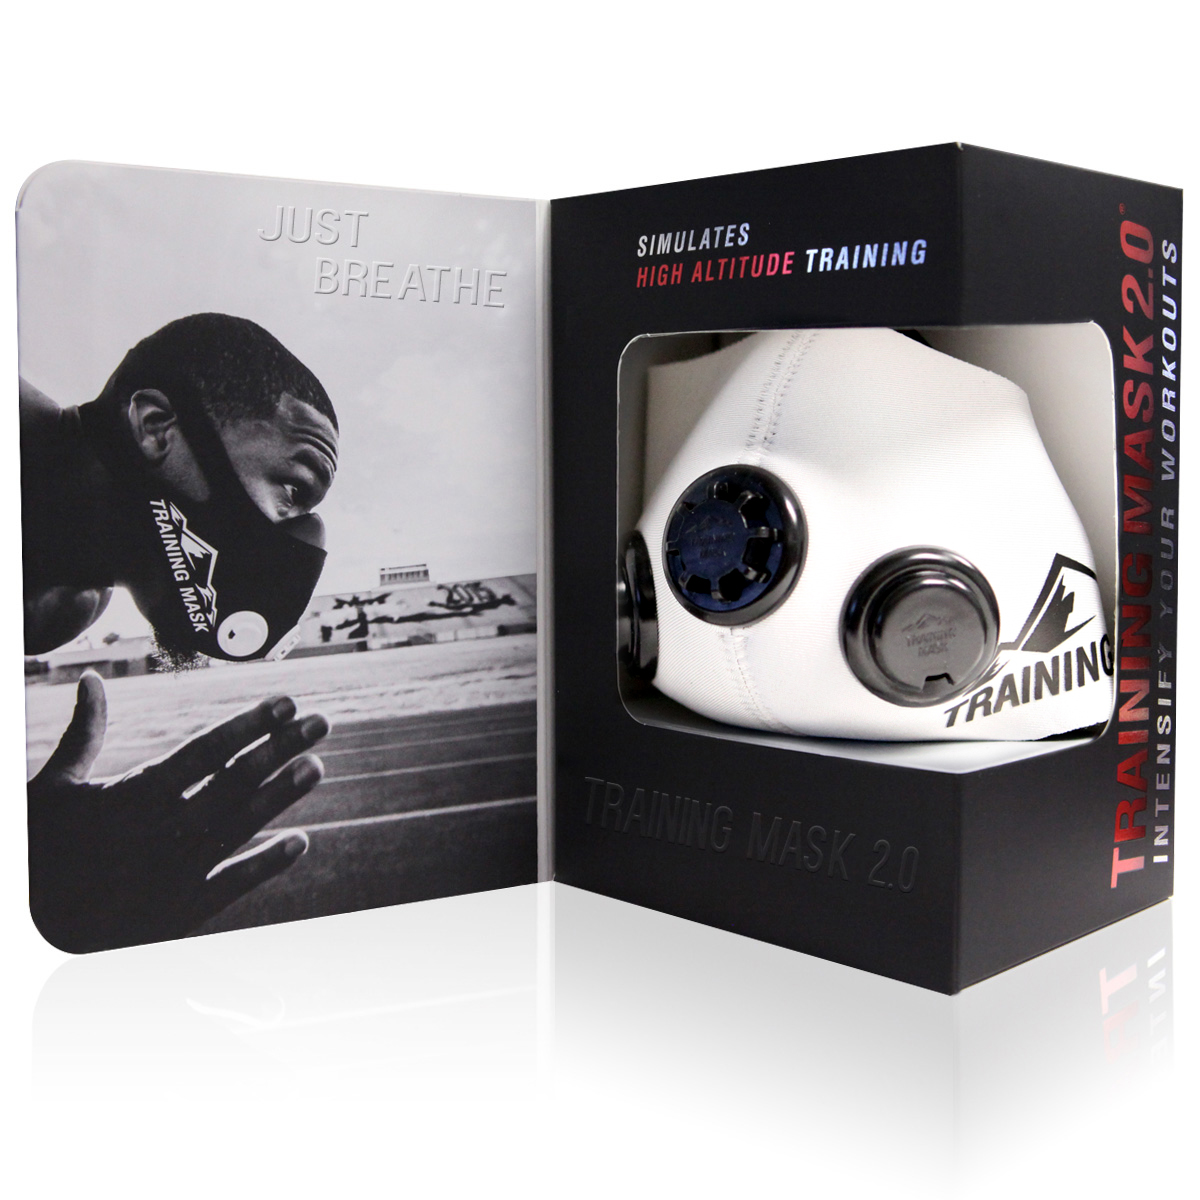 Elevation Training Mask 2.0 High Altitude Simulation - WHITEOUT